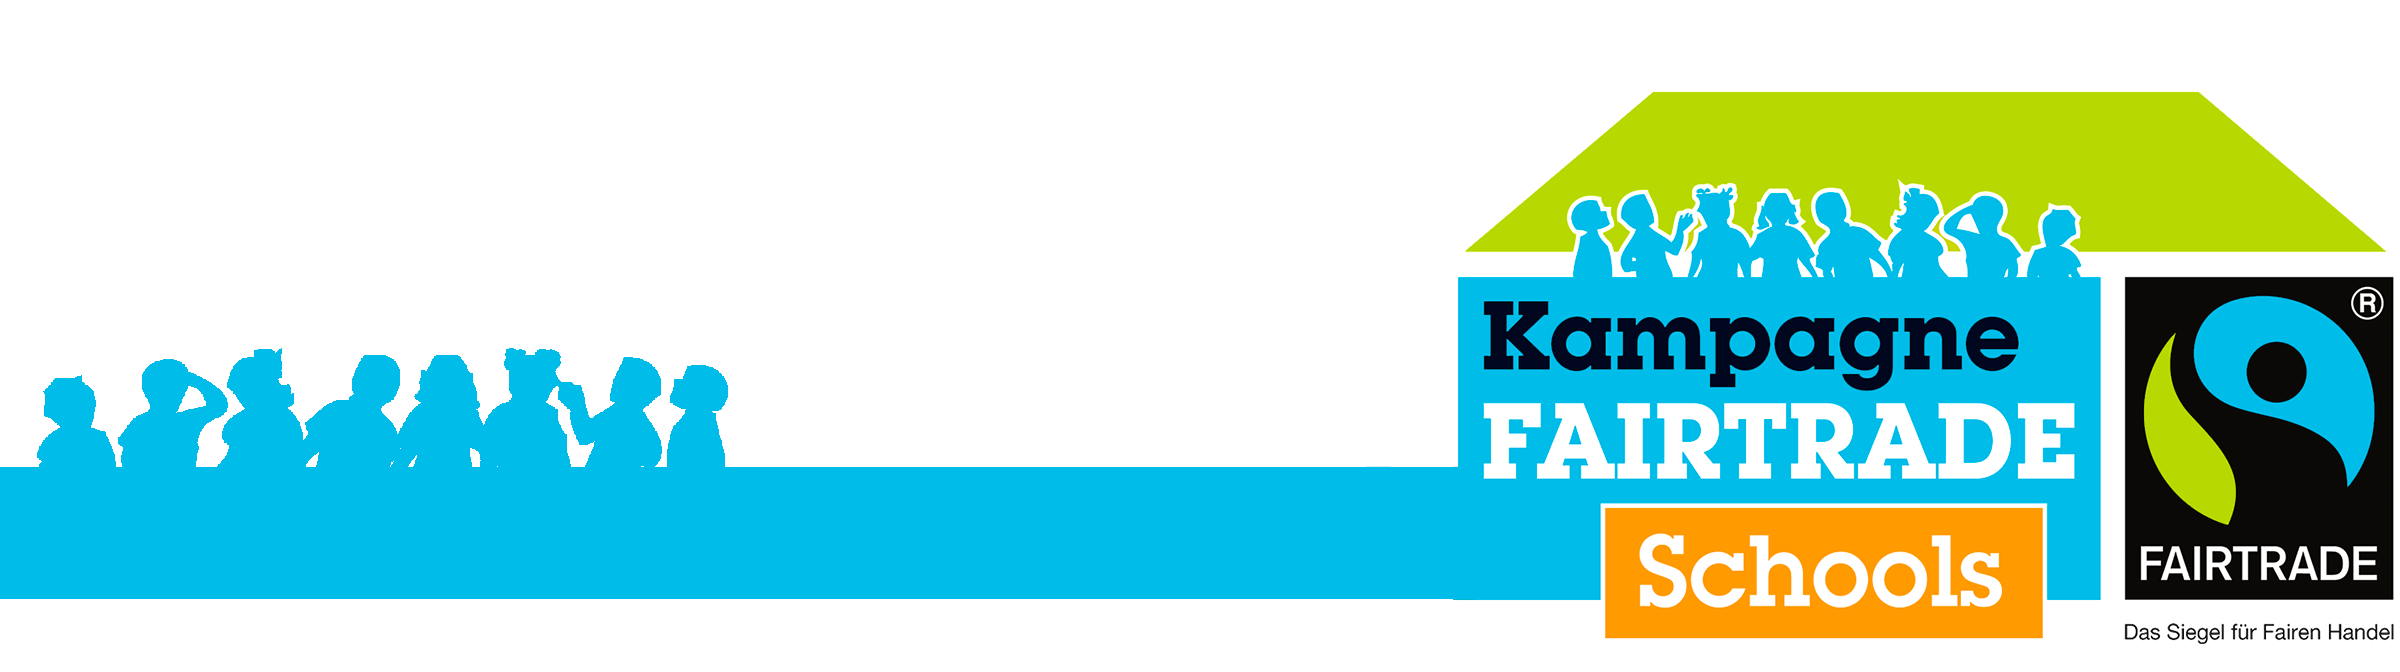 Fairtrade Schools Logo